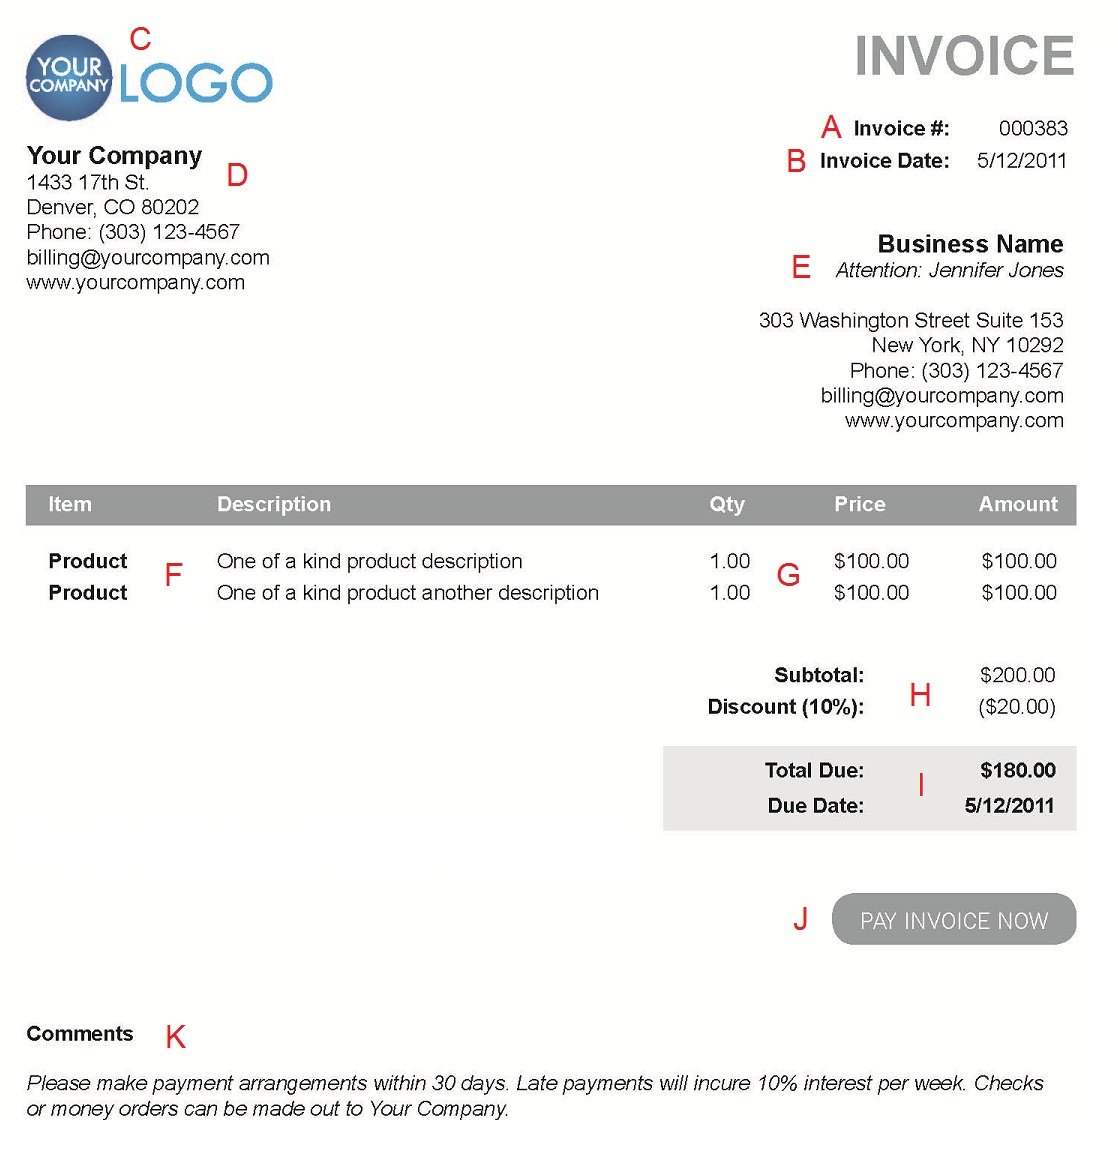 Ultrablogus  Scenic The  Different Sections Of An Electronic Payment Invoice With Foxy A  With Awesome Sending Invoices Also Commission Invoice Template In Addition Website Invoice Template And Free Printable Blank Invoices As Well As Bmw Invoice Pricing Additionally Invoice Forms Online From Paysimplecom With Ultrablogus  Foxy The  Different Sections Of An Electronic Payment Invoice With Awesome A  And Scenic Sending Invoices Also Commission Invoice Template In Addition Website Invoice Template From Paysimplecom